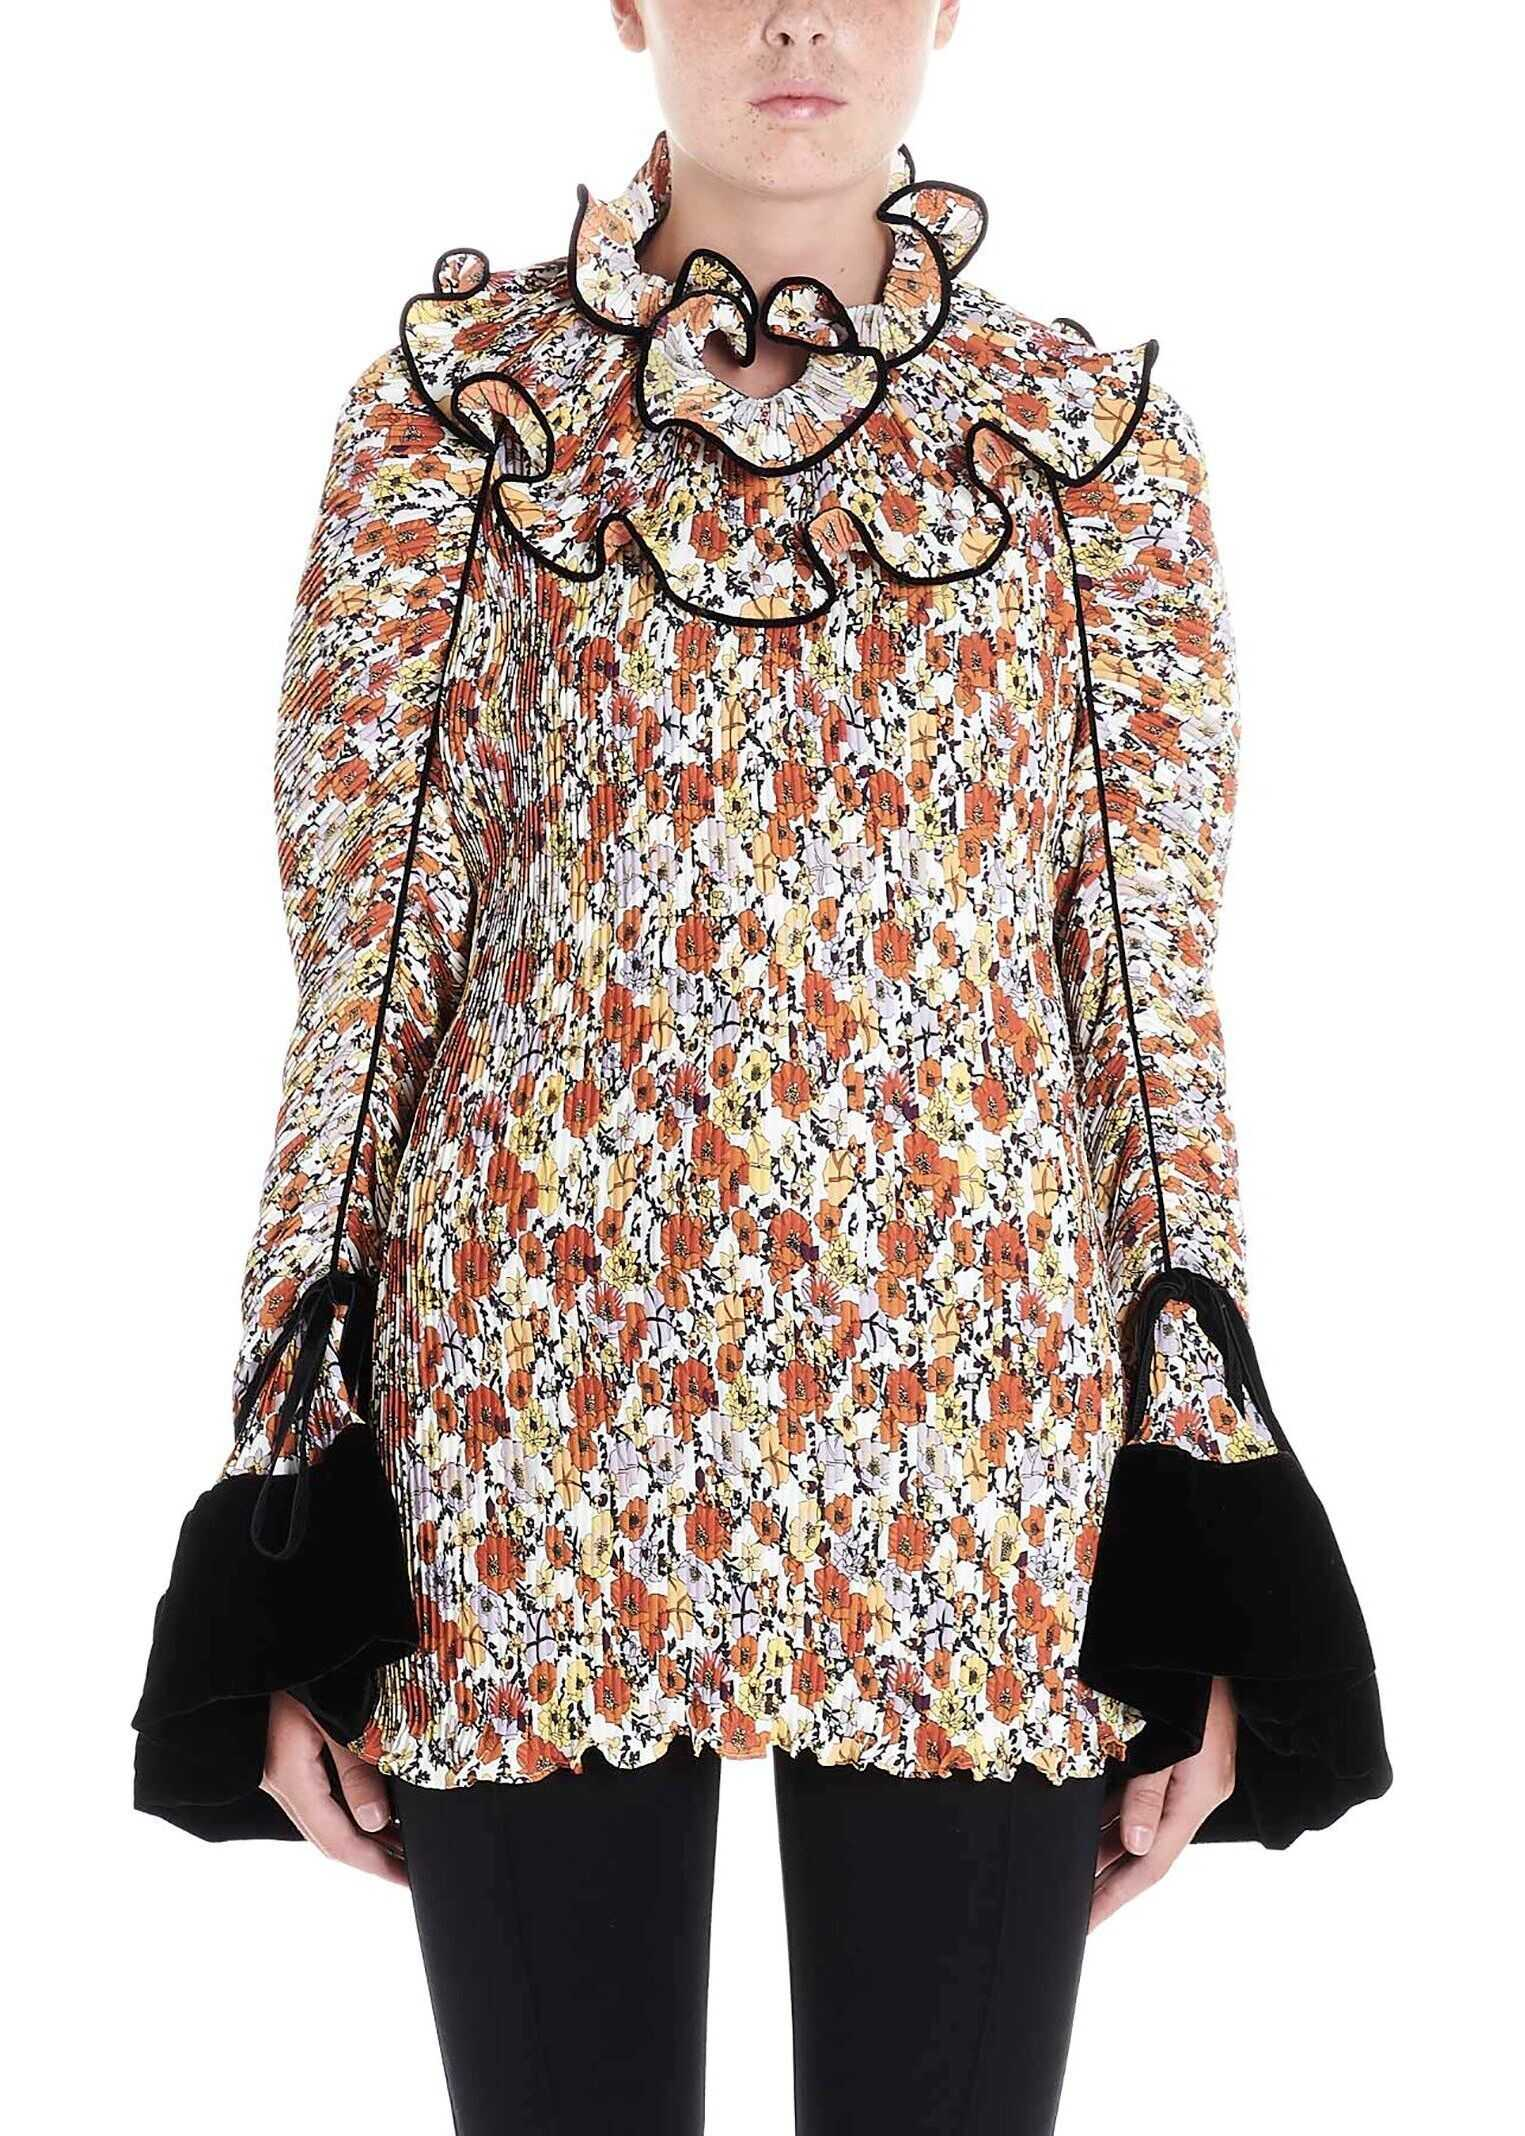 Tory Burch Polyester Blouse MULTICOLOR